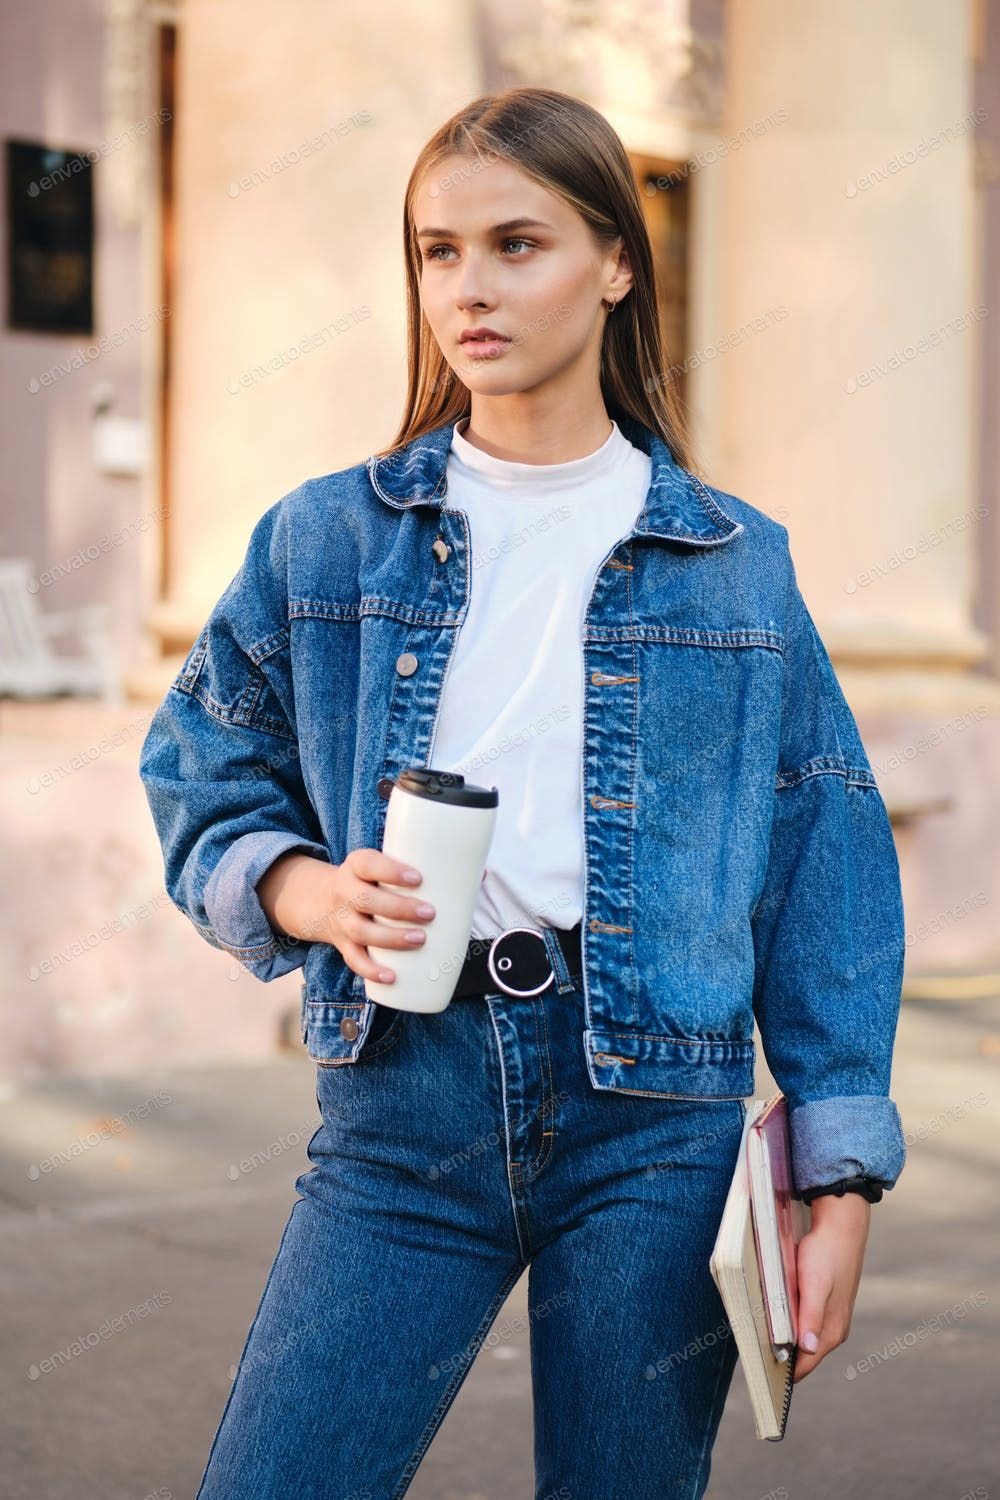 Young Serious Stylish Student Girl In Denim Jacket Thoughtfully